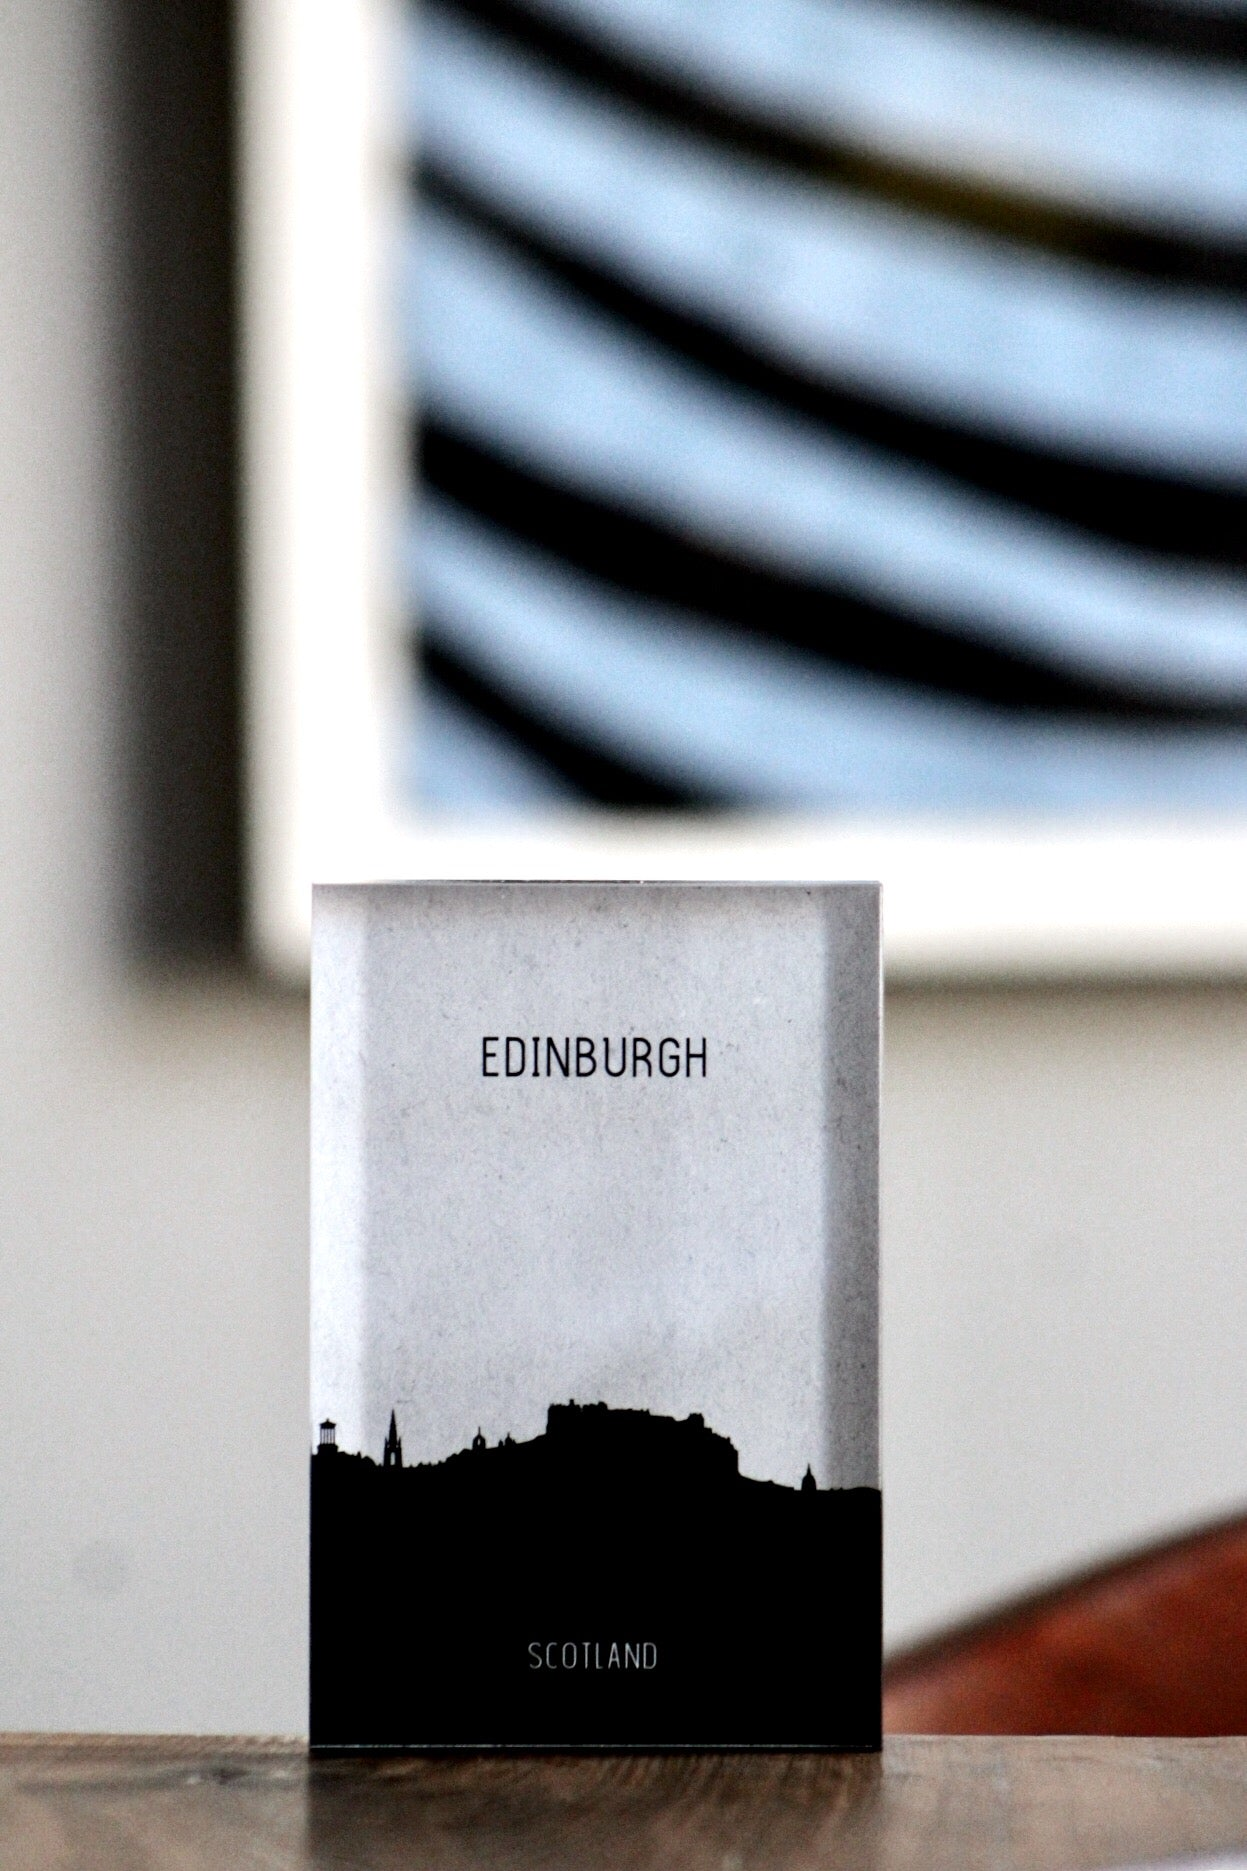 Edinburgh design object